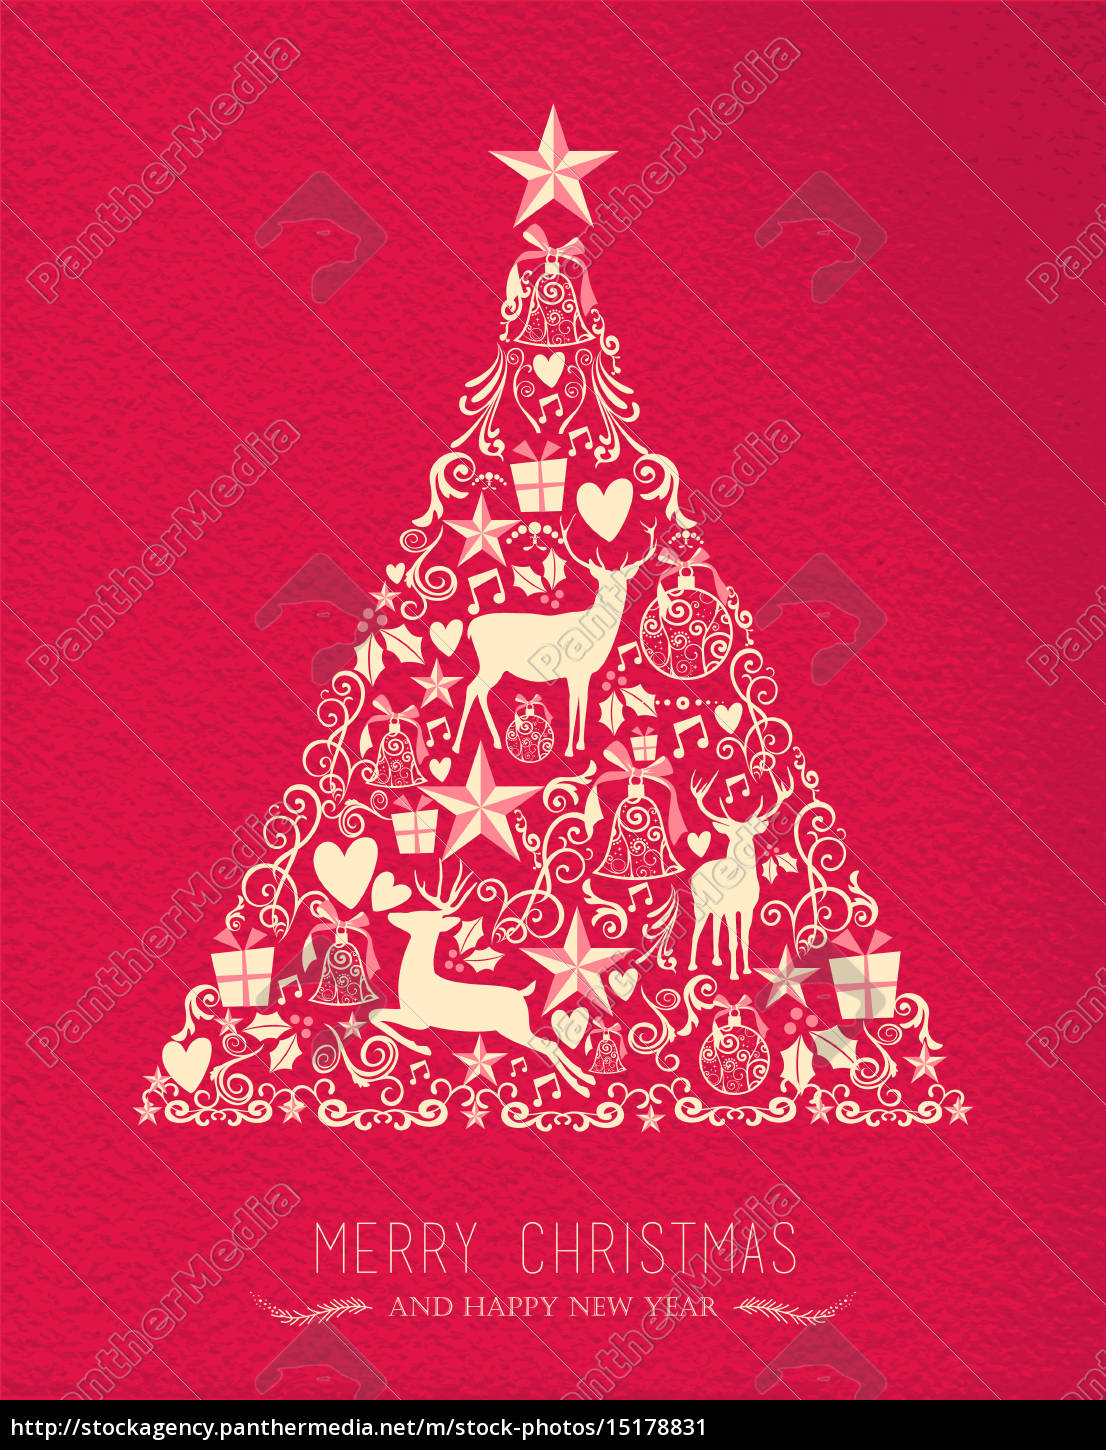 merry christmas happy new year pine tree deer card stock photo 15178831 panthermedia stock agency https stockagency panthermedia net m stock photos 15178831 merry christmas happy new year pine